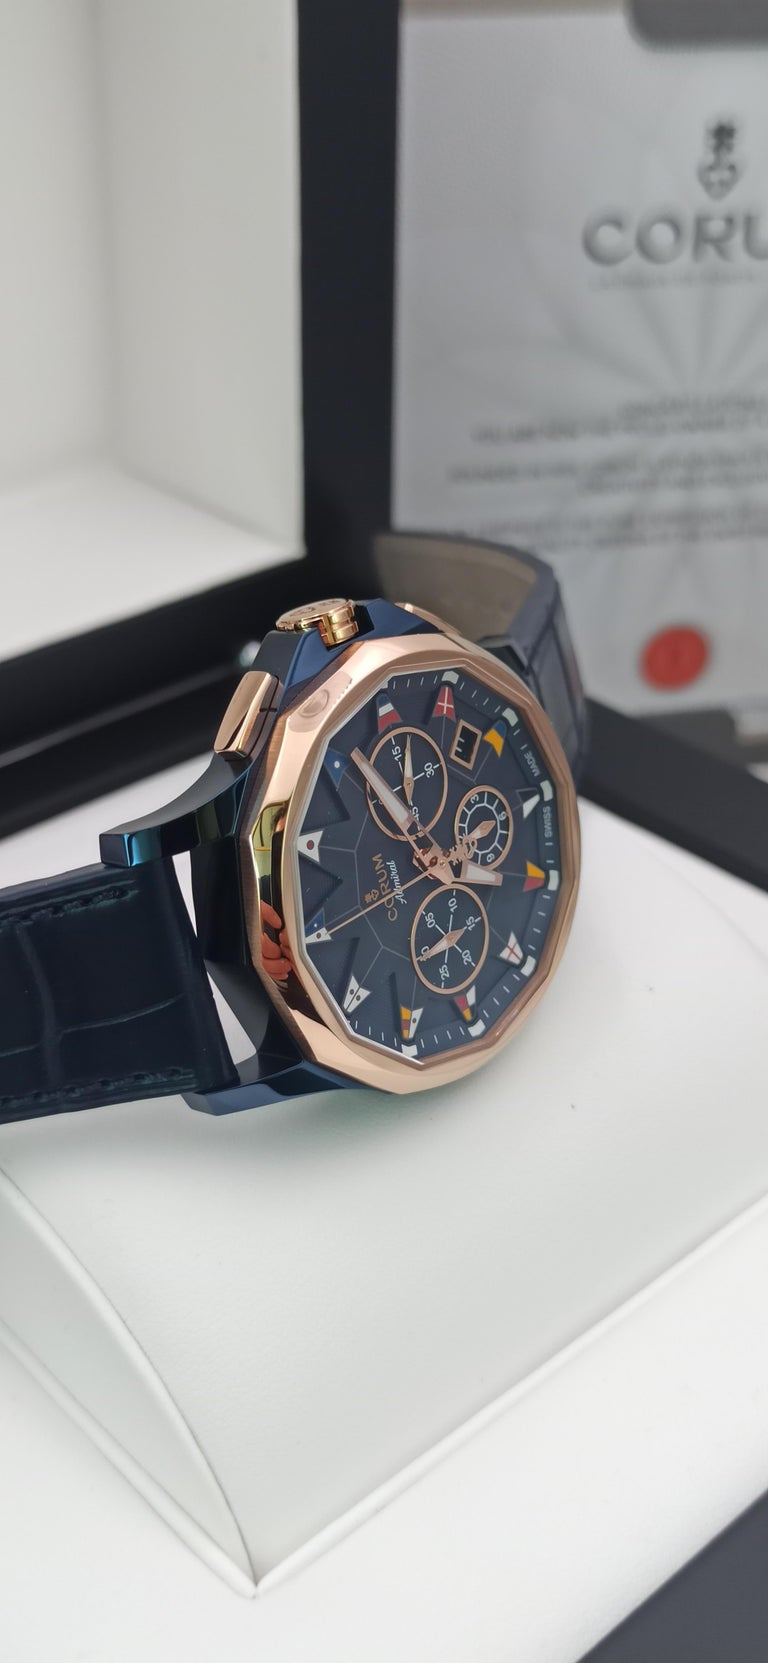 Corum Admiral Cup, Chronograph, 18kt Rose Gold and PVD Steel Case In New Condition For Sale In Mestre Venezia, IT